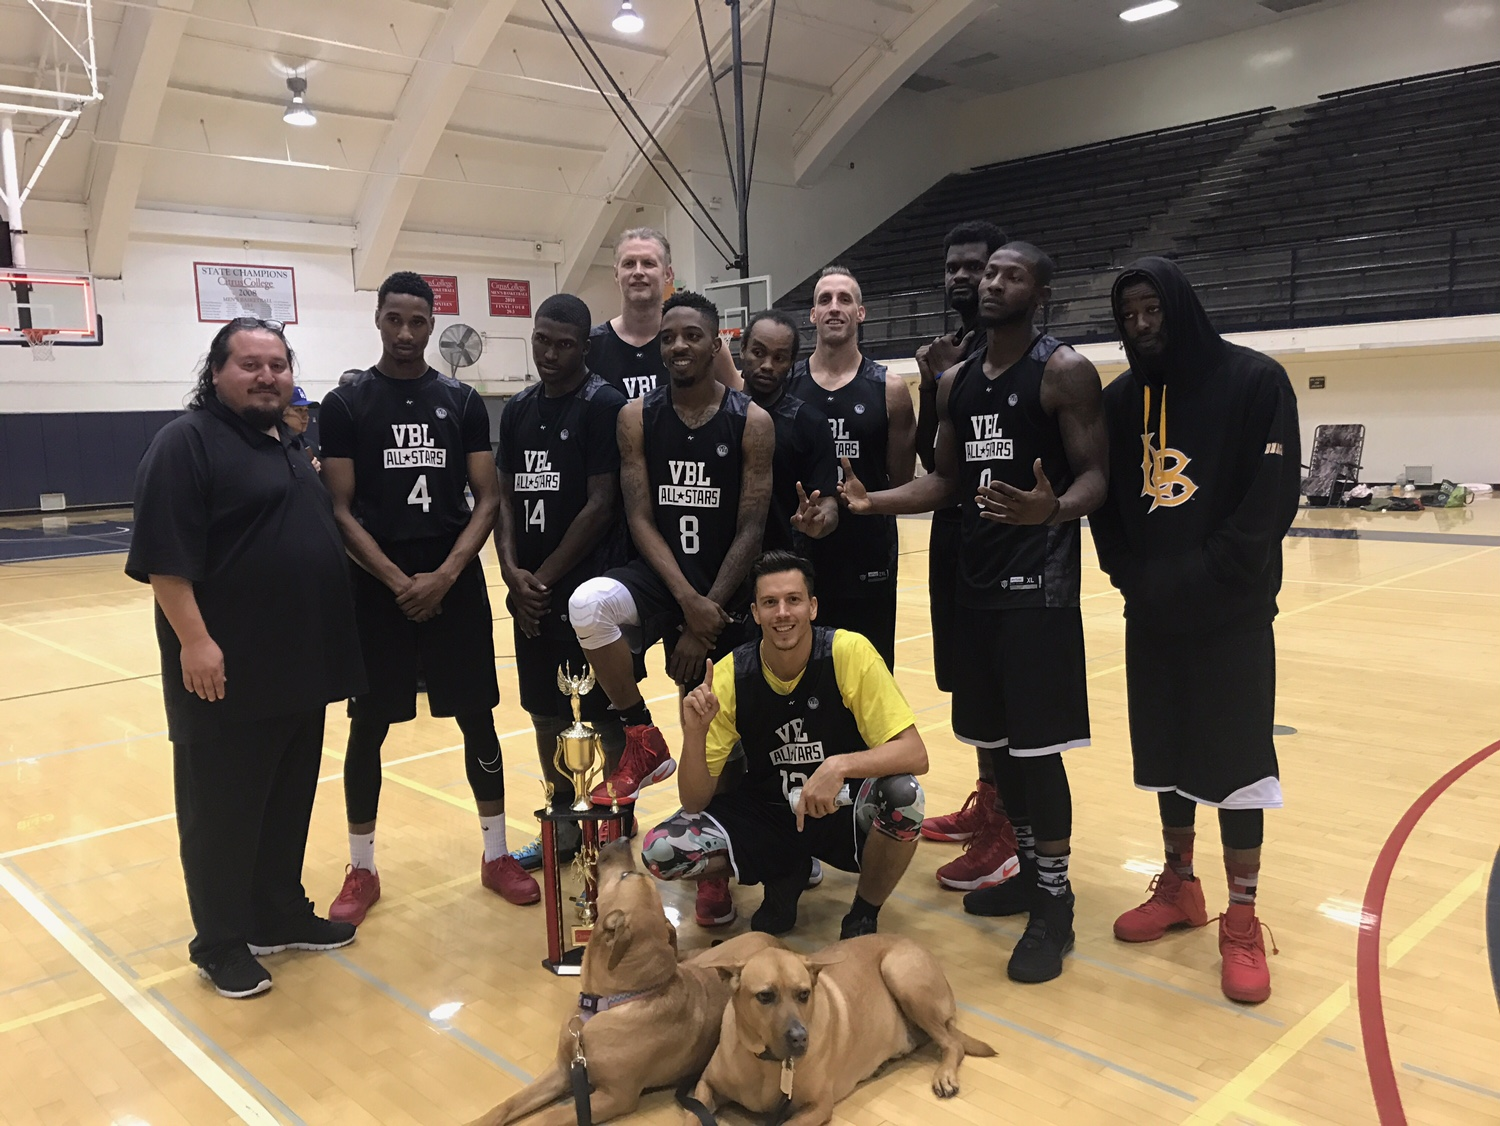 Another Championship weekend with our VBL ALL STAR FAMILY